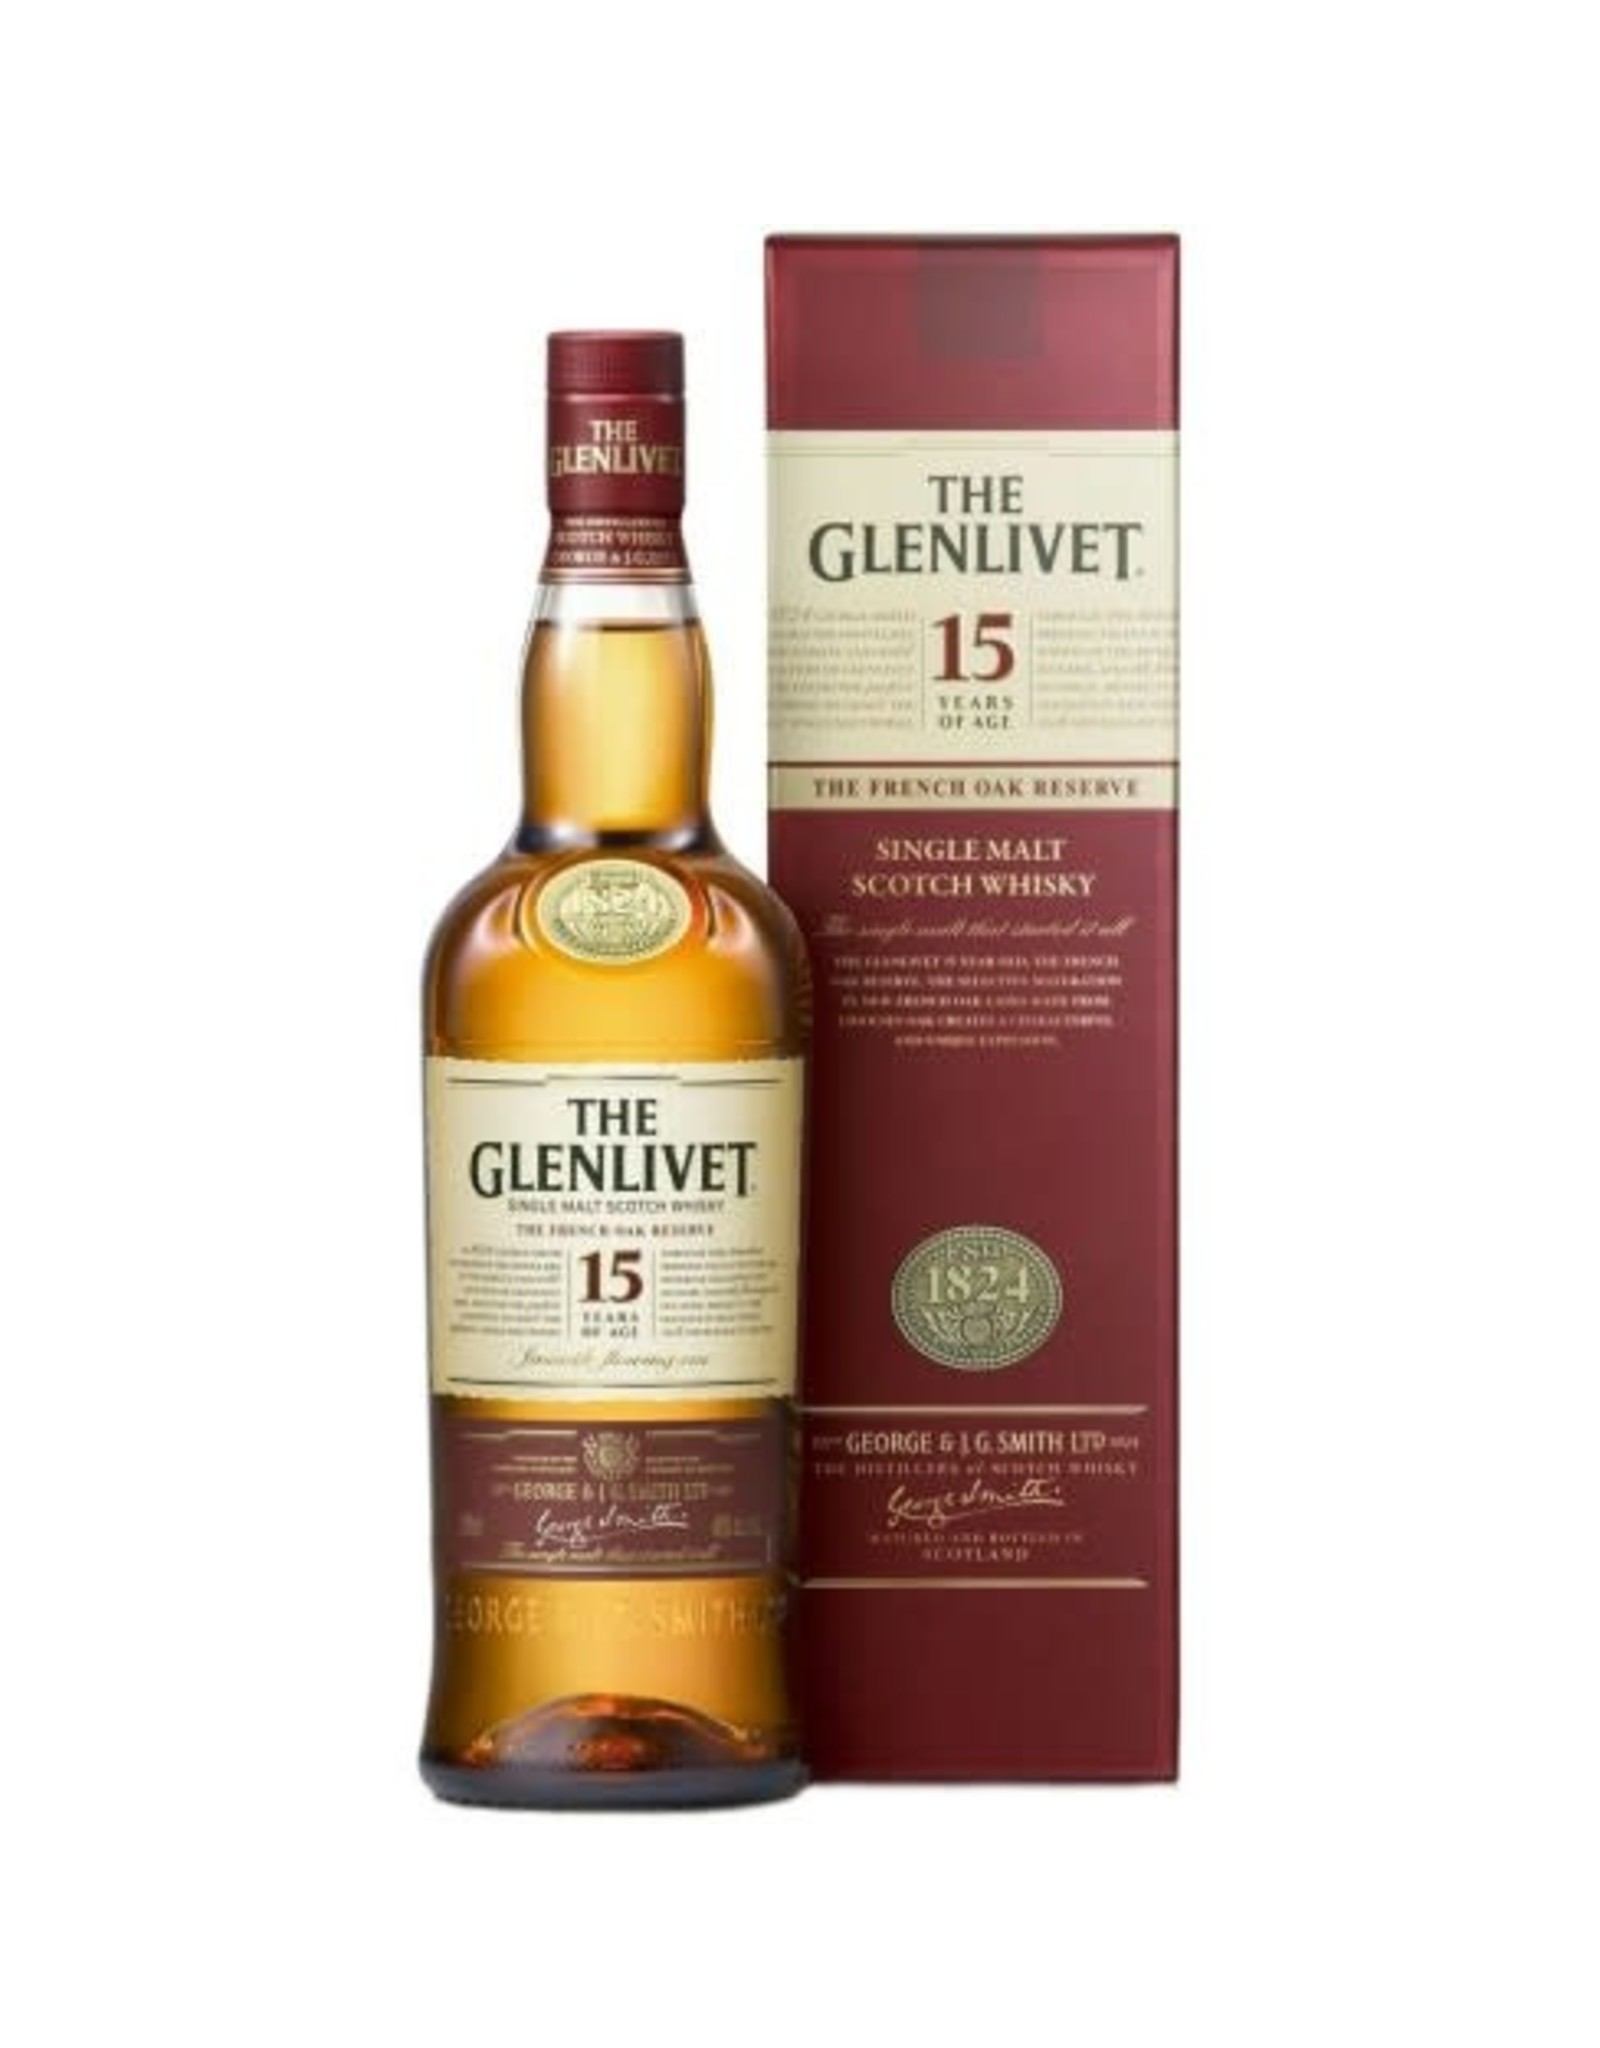 GLENLIVET FRENCH OAK RESERVE 15 YR SCOTCH 750ML